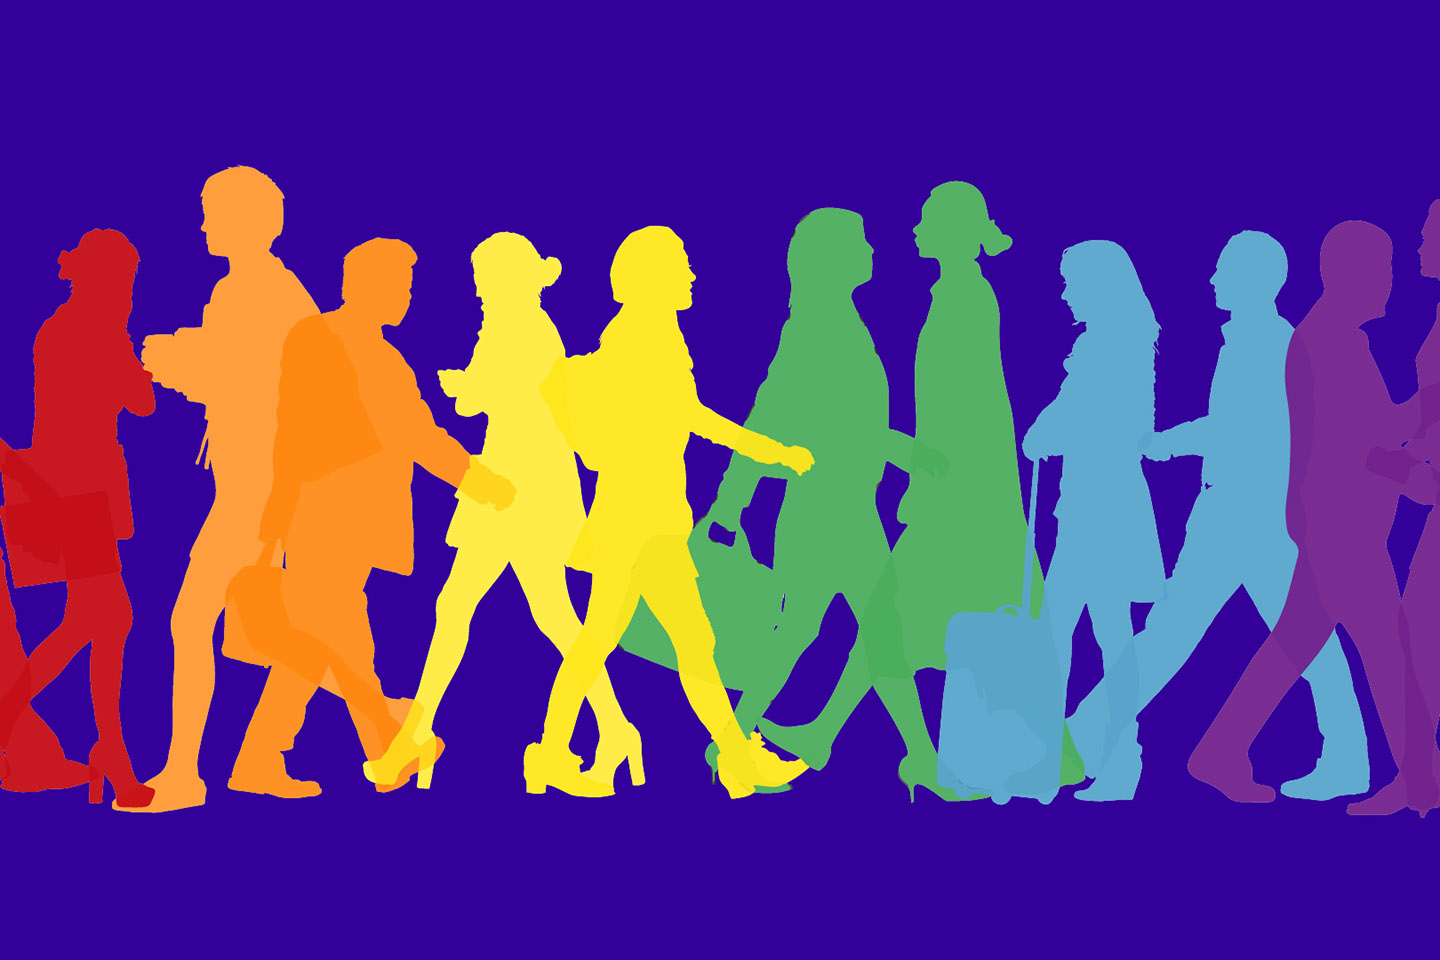 Silhouette of people walking on a colored background